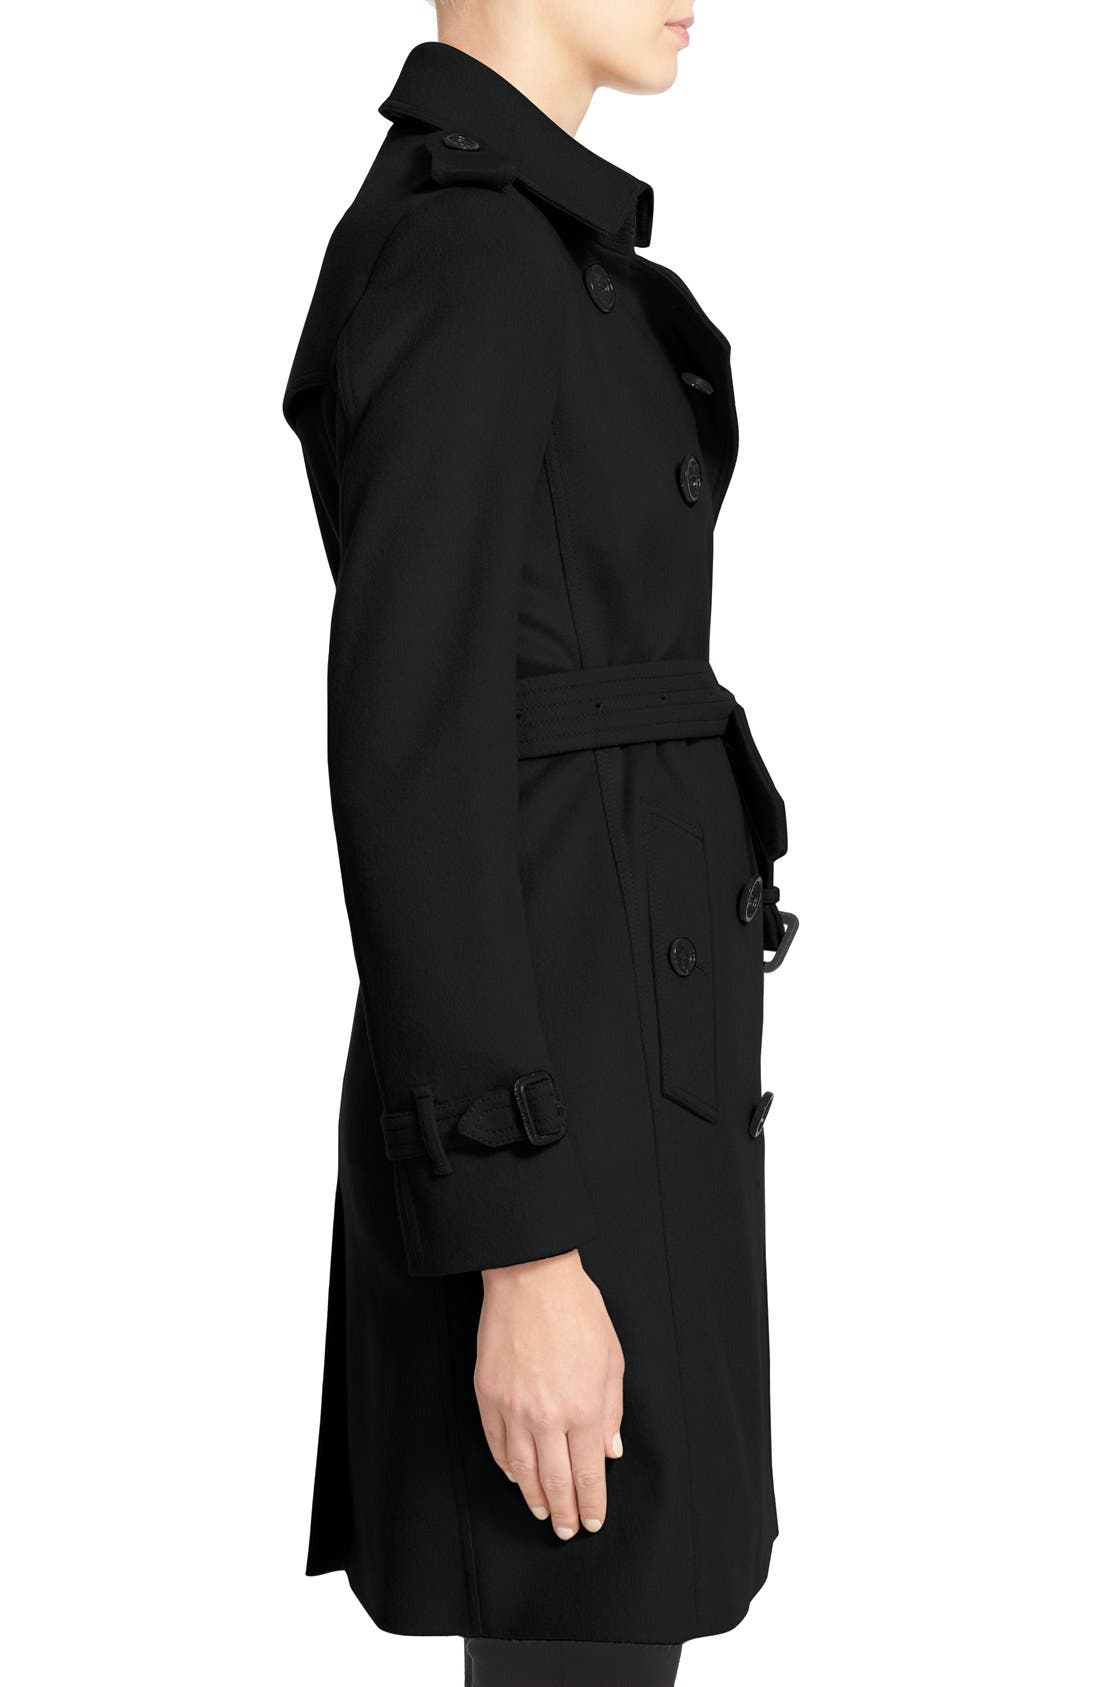 Kensington Double Breasted Wool & Cashmere Trench Coat,                             Alternate thumbnail 5, color,                             Black